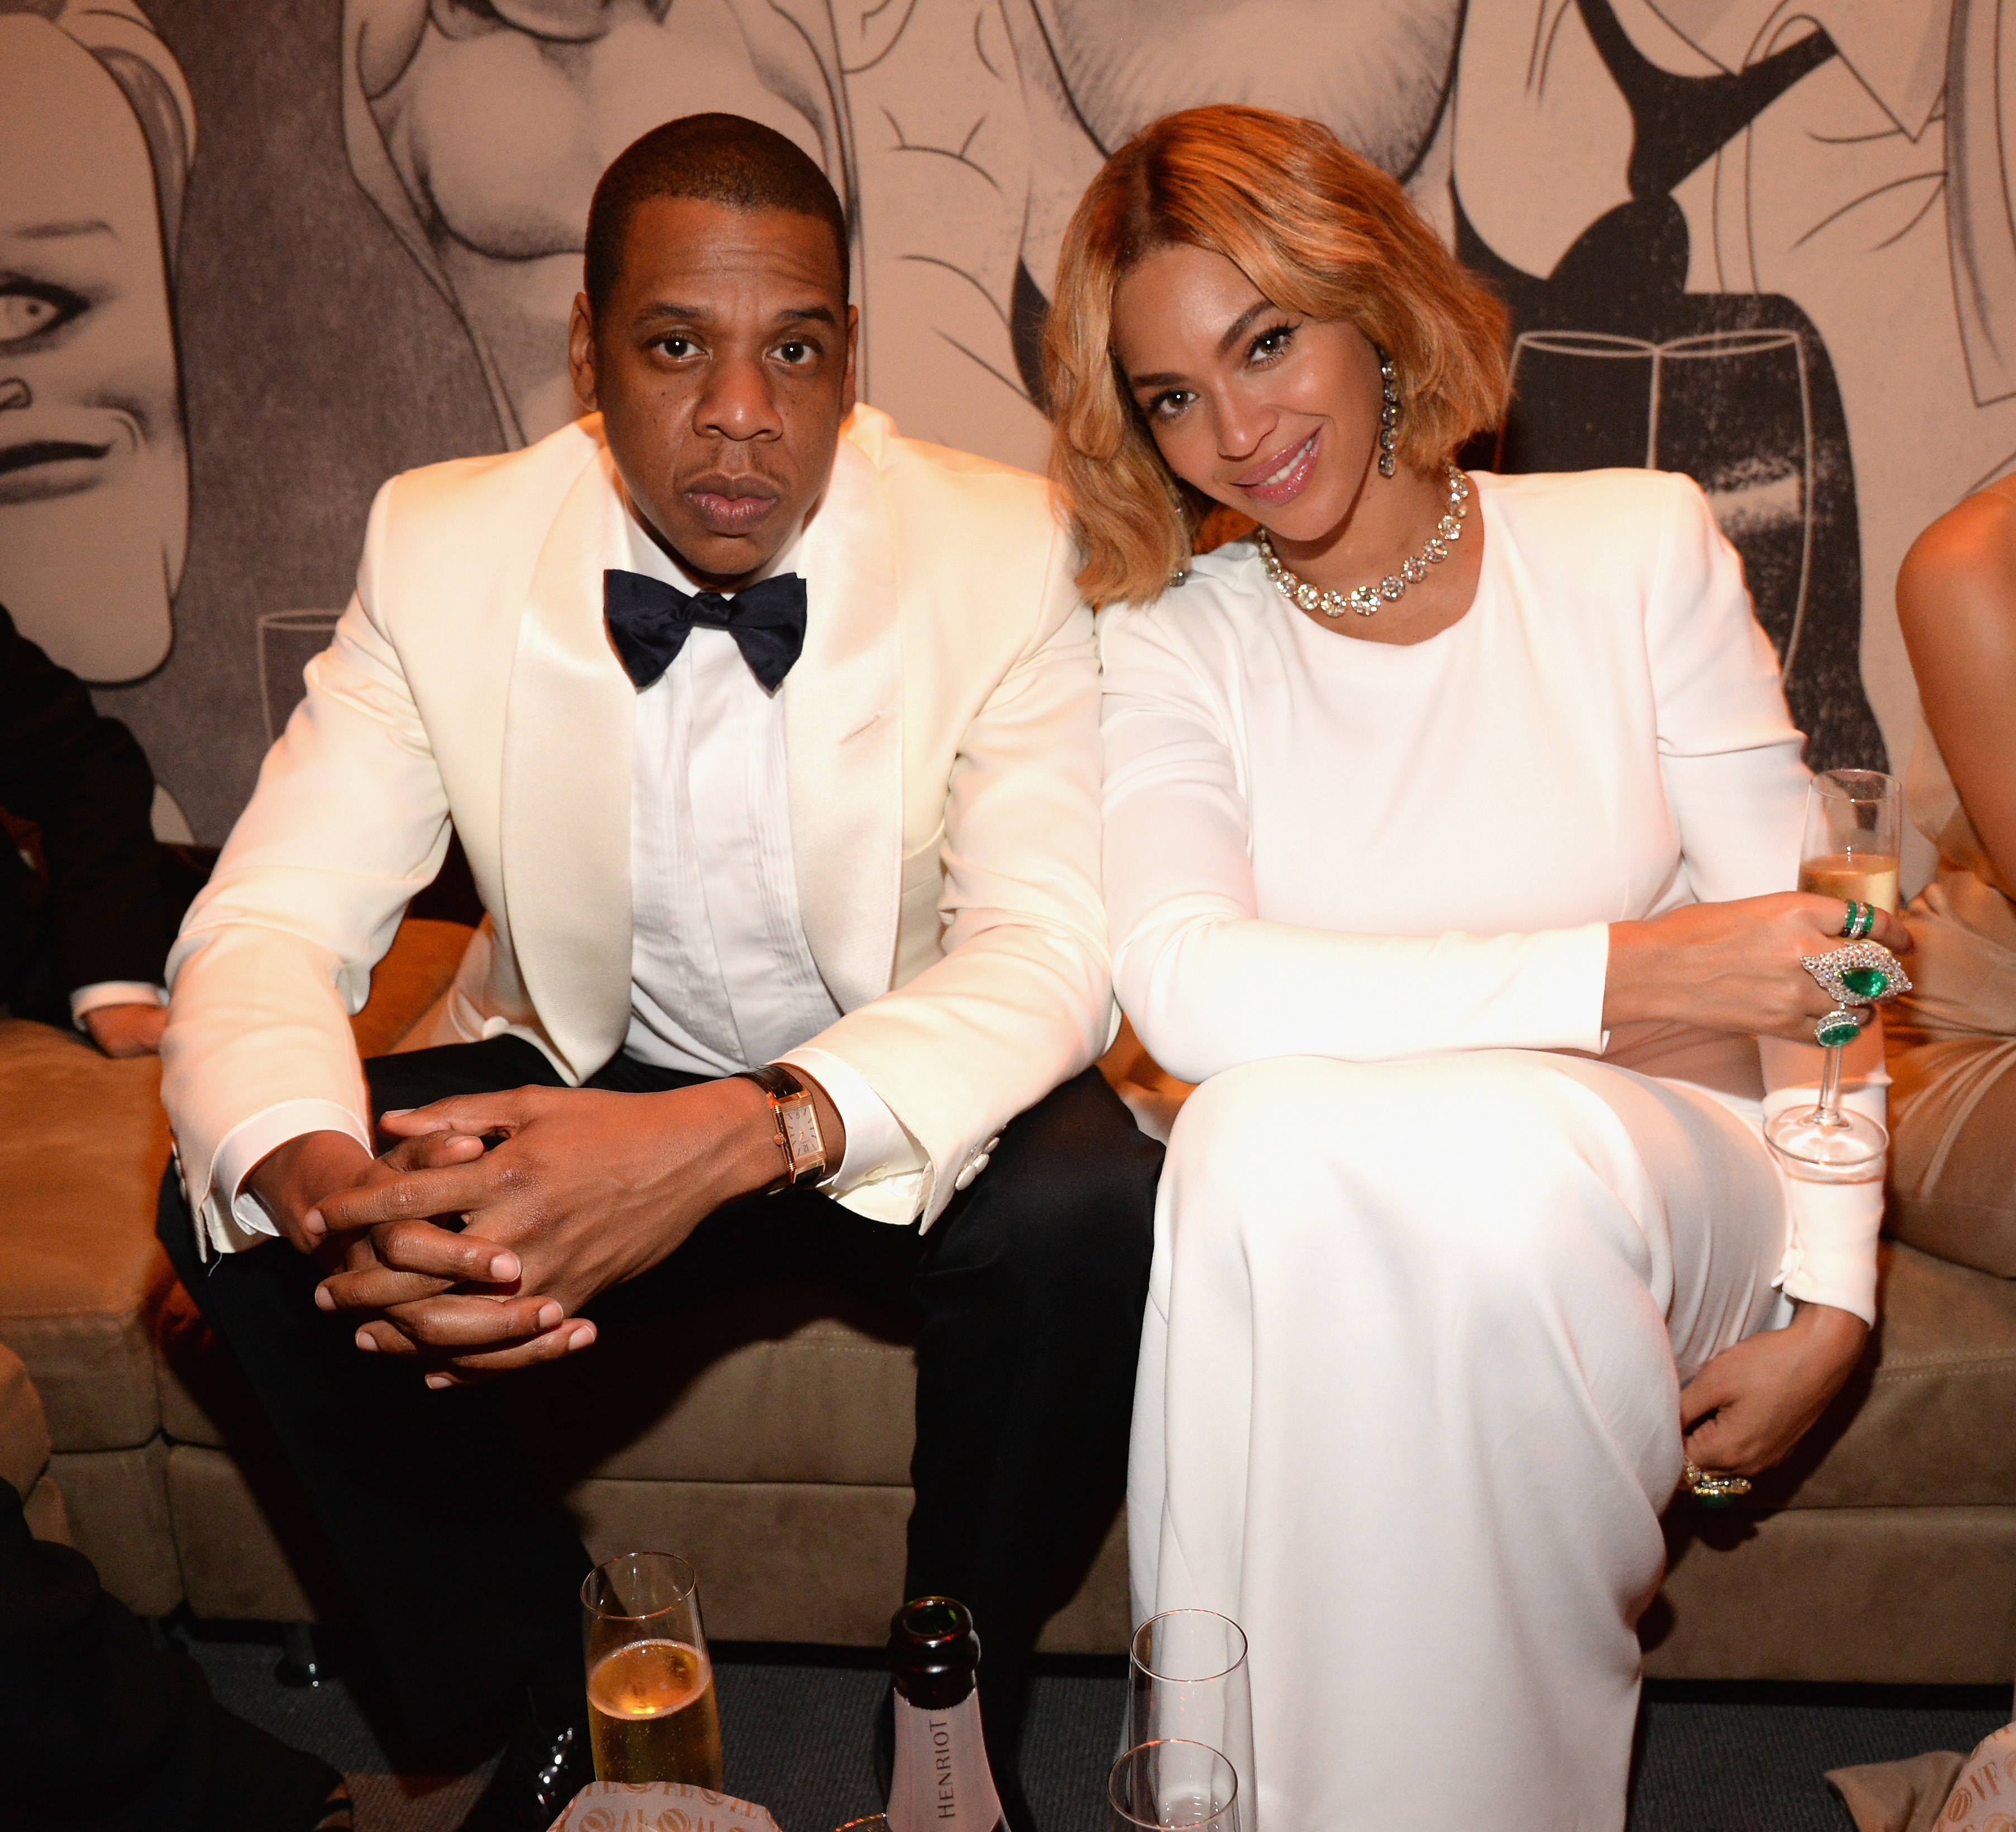 Jay Z and Beyonce attend the 2015 Vanity Fair Oscar Party on February 22, 2015 in Beverly Hills, California. (Photo by Kevin Mazur/VF15/WireImage)